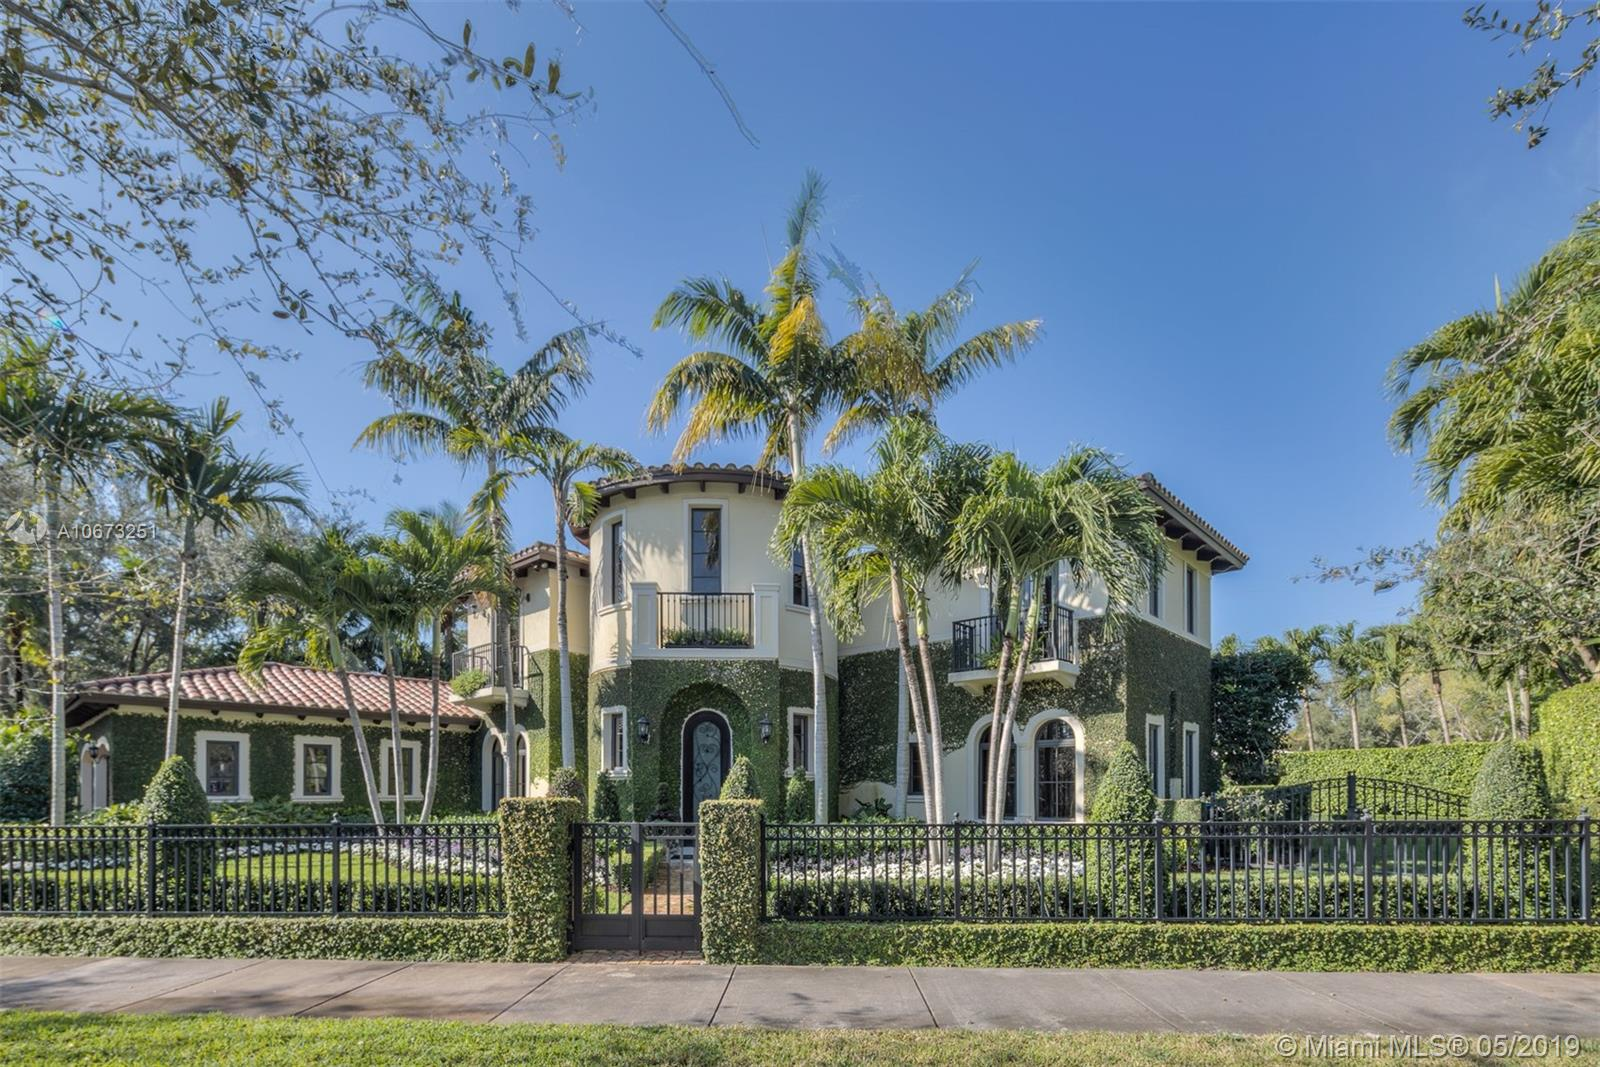 5820 Augusto St, Coral Gables, FL 33146